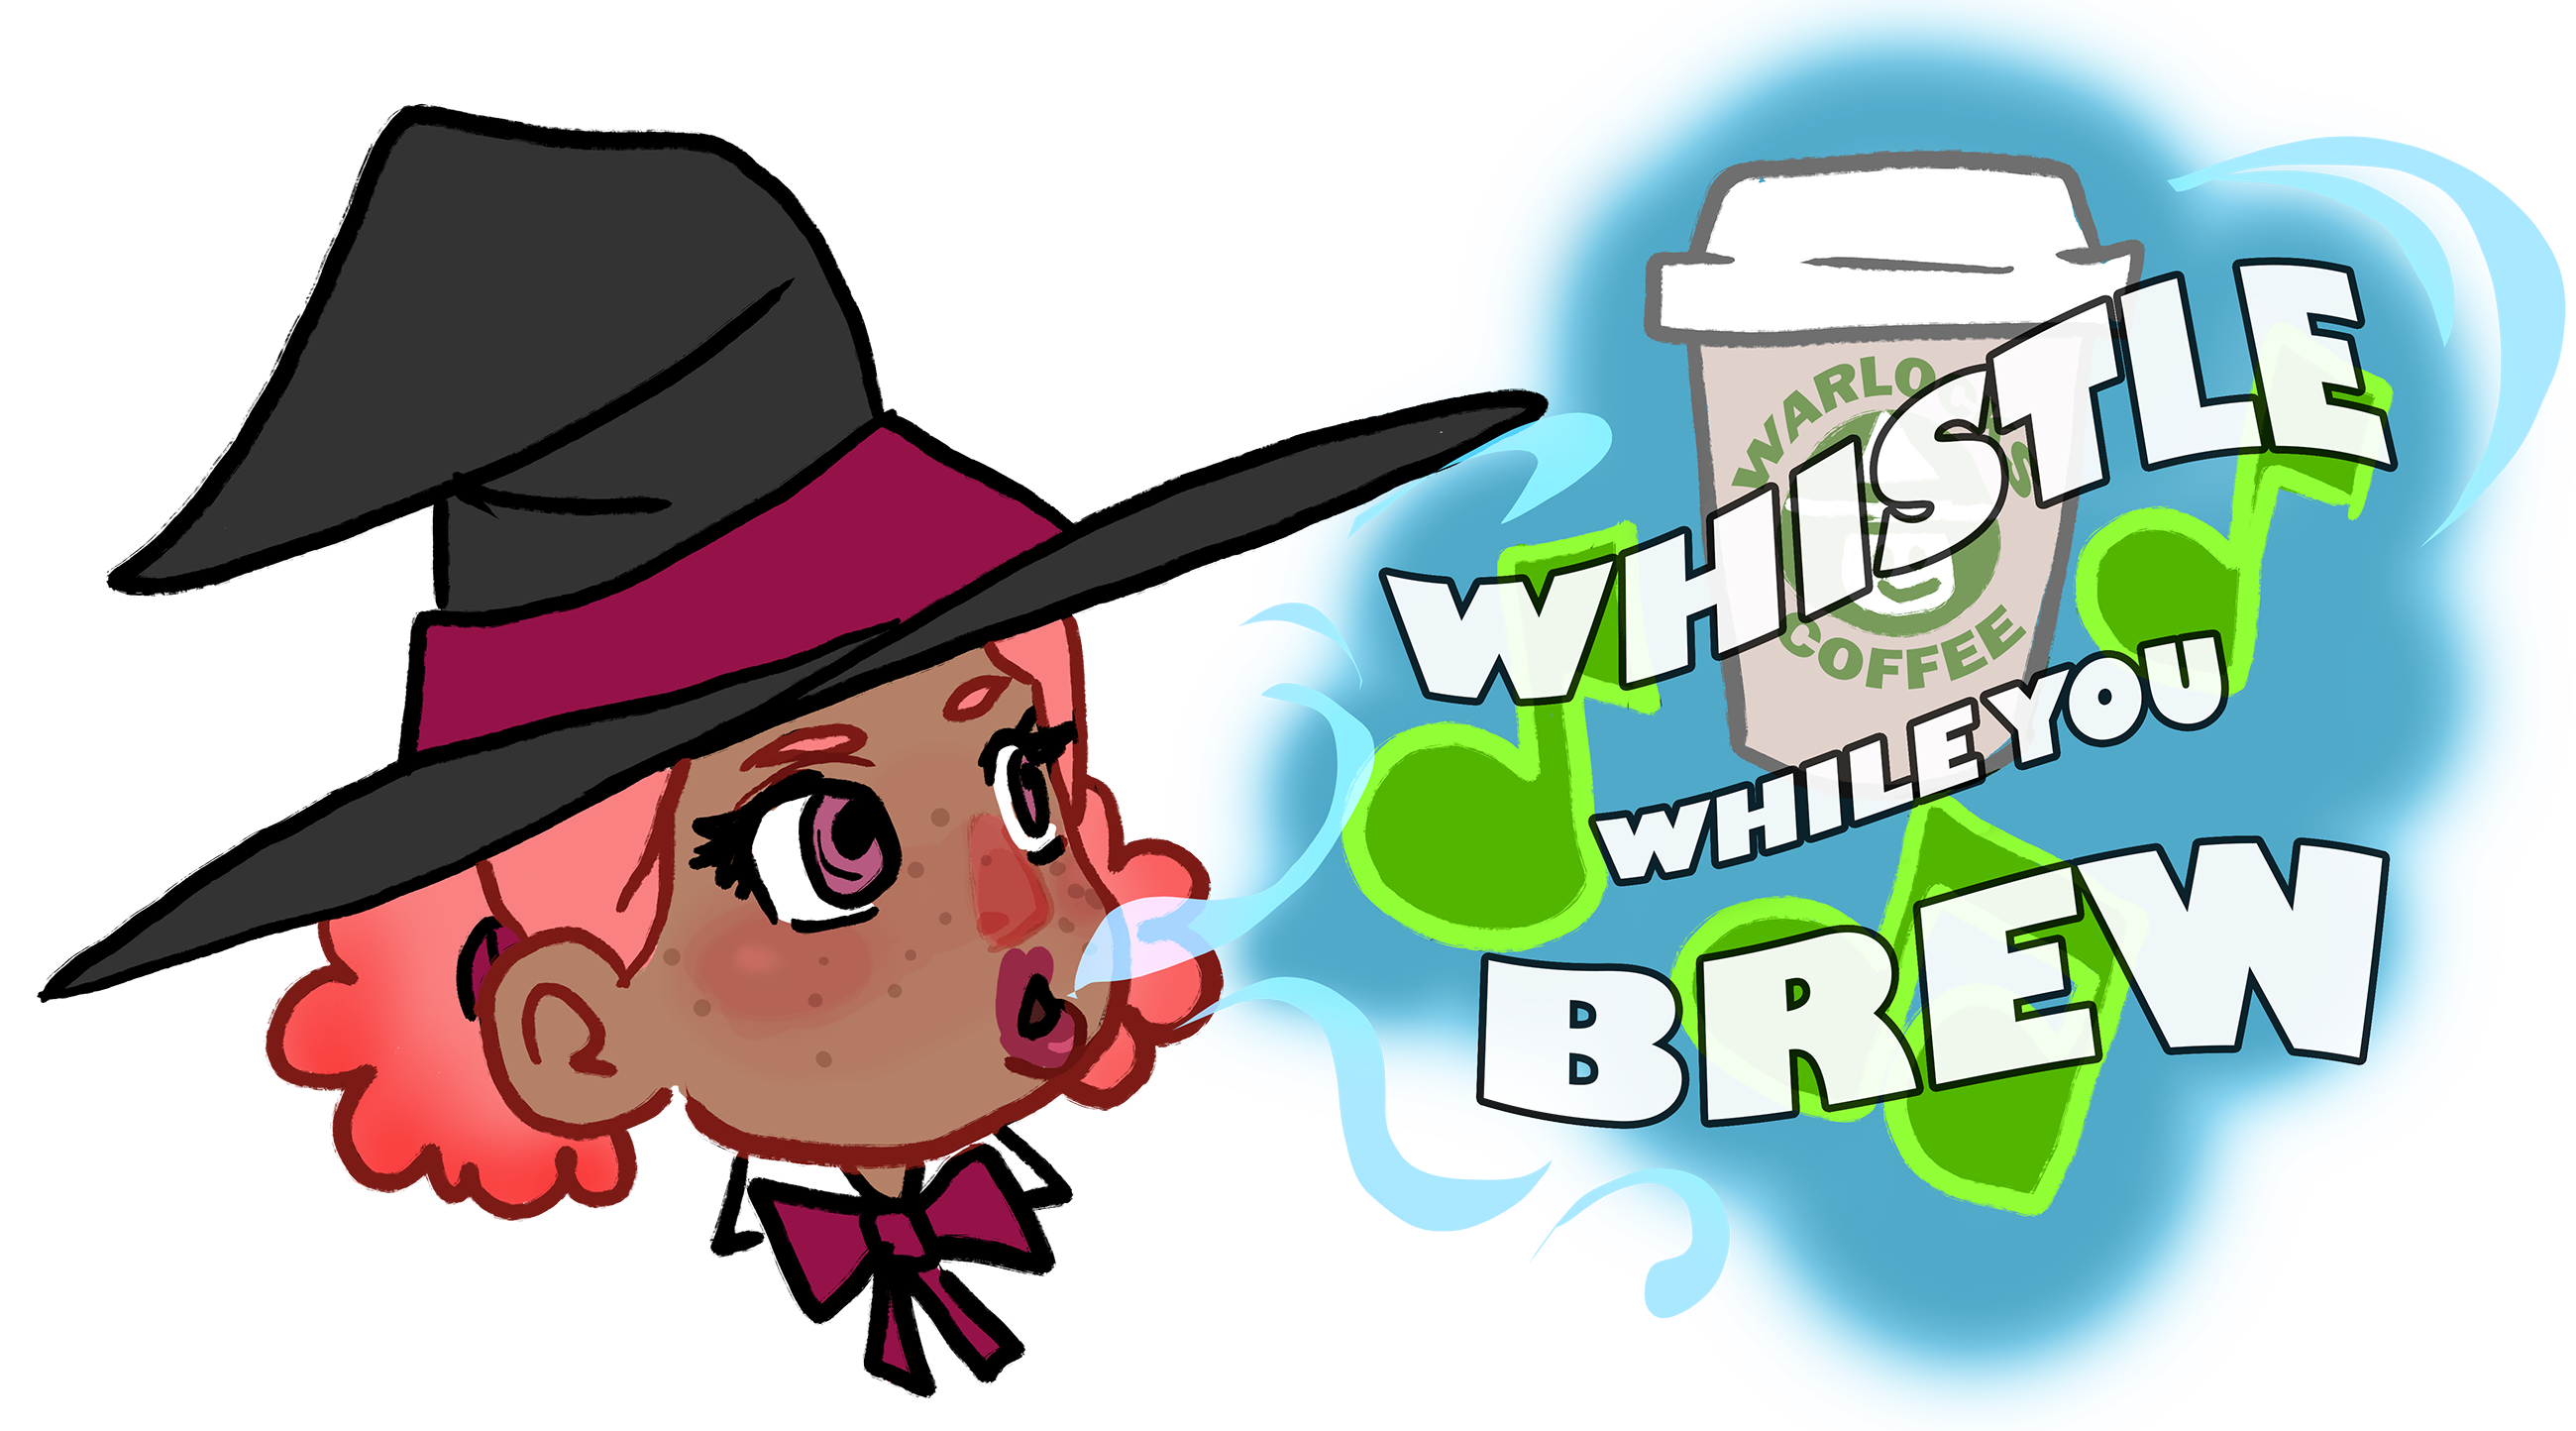 Whistle While You Brew